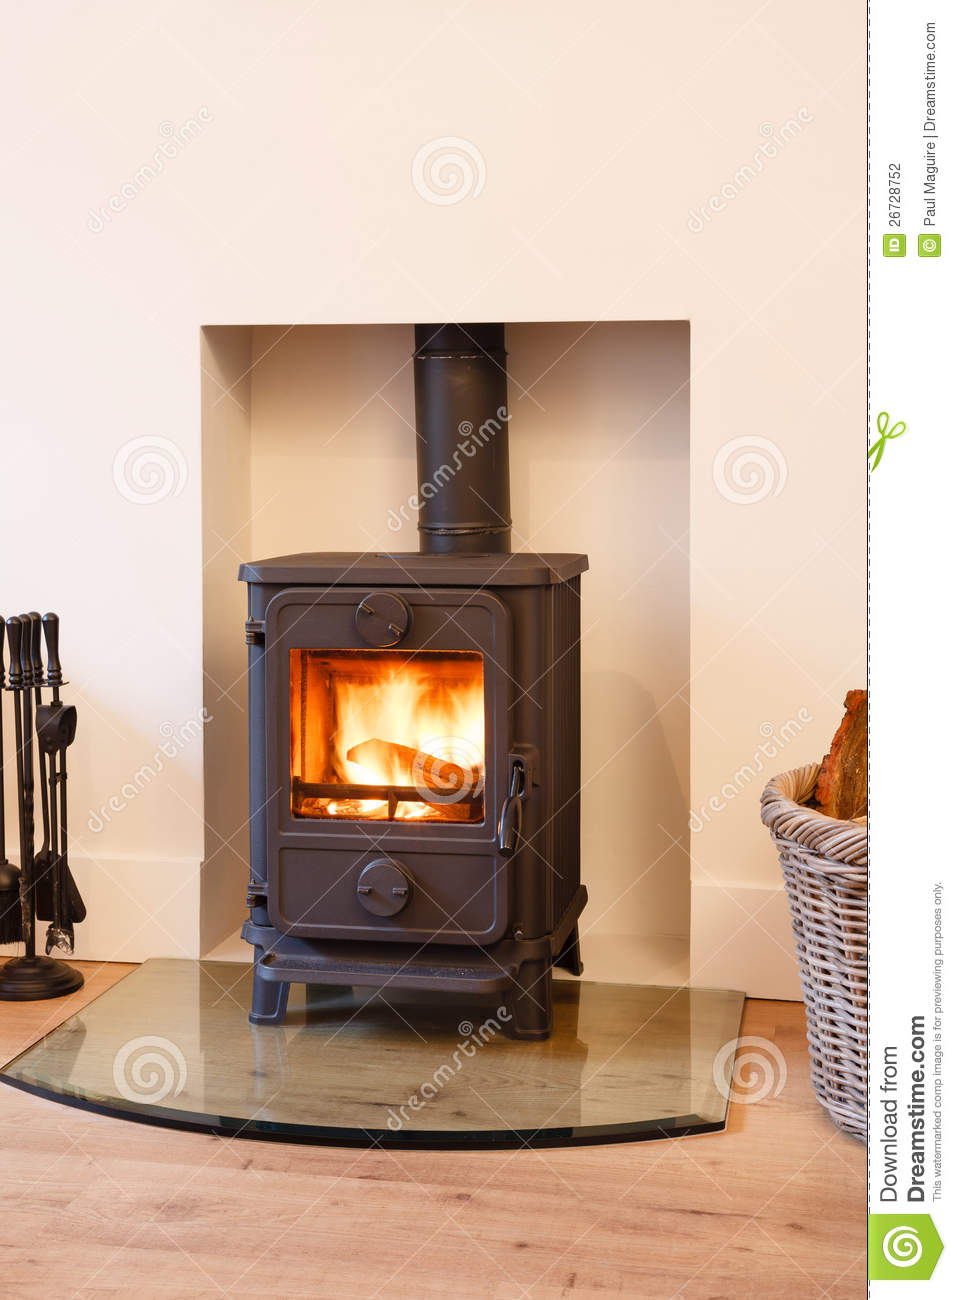 Wood Burning Stove Stock Photography Image 26728752